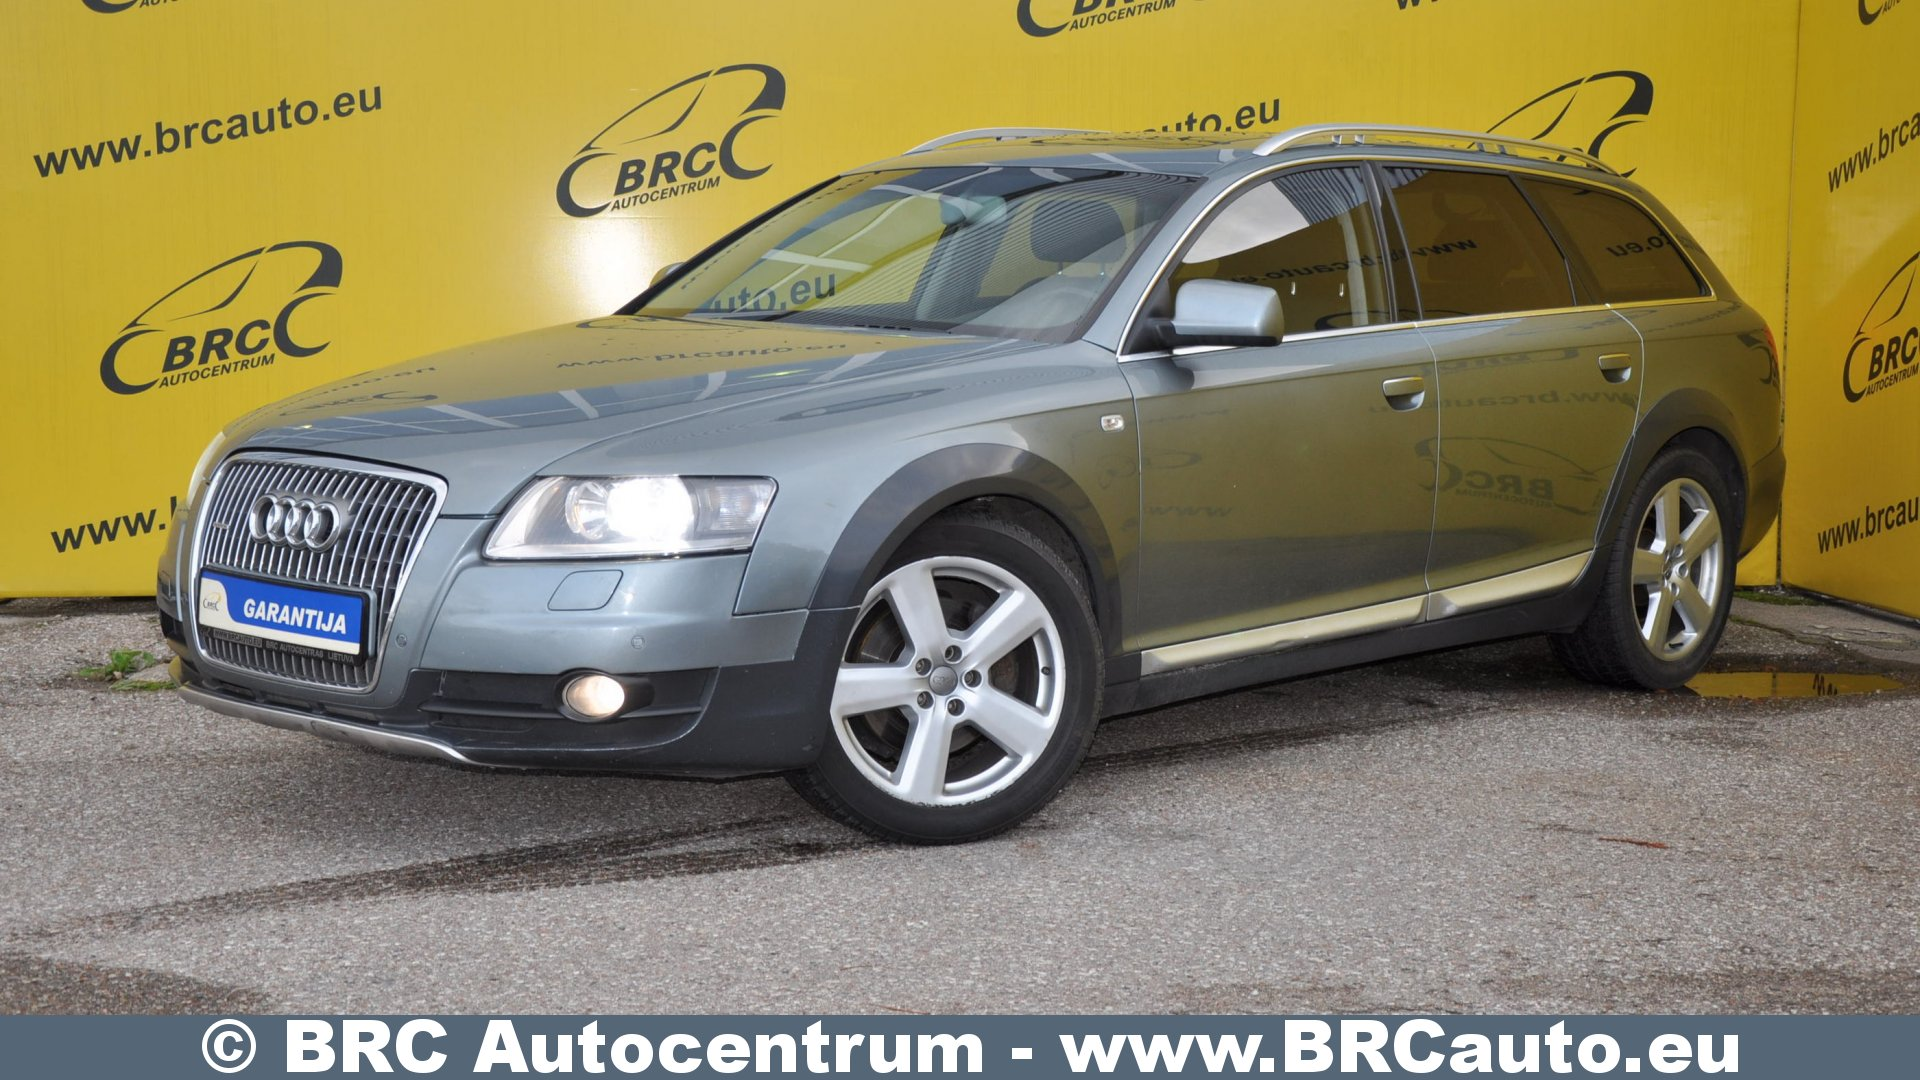 audi a6 allroad 2 7 tdi quattro automatas no 74 brc autocentrum. Black Bedroom Furniture Sets. Home Design Ideas